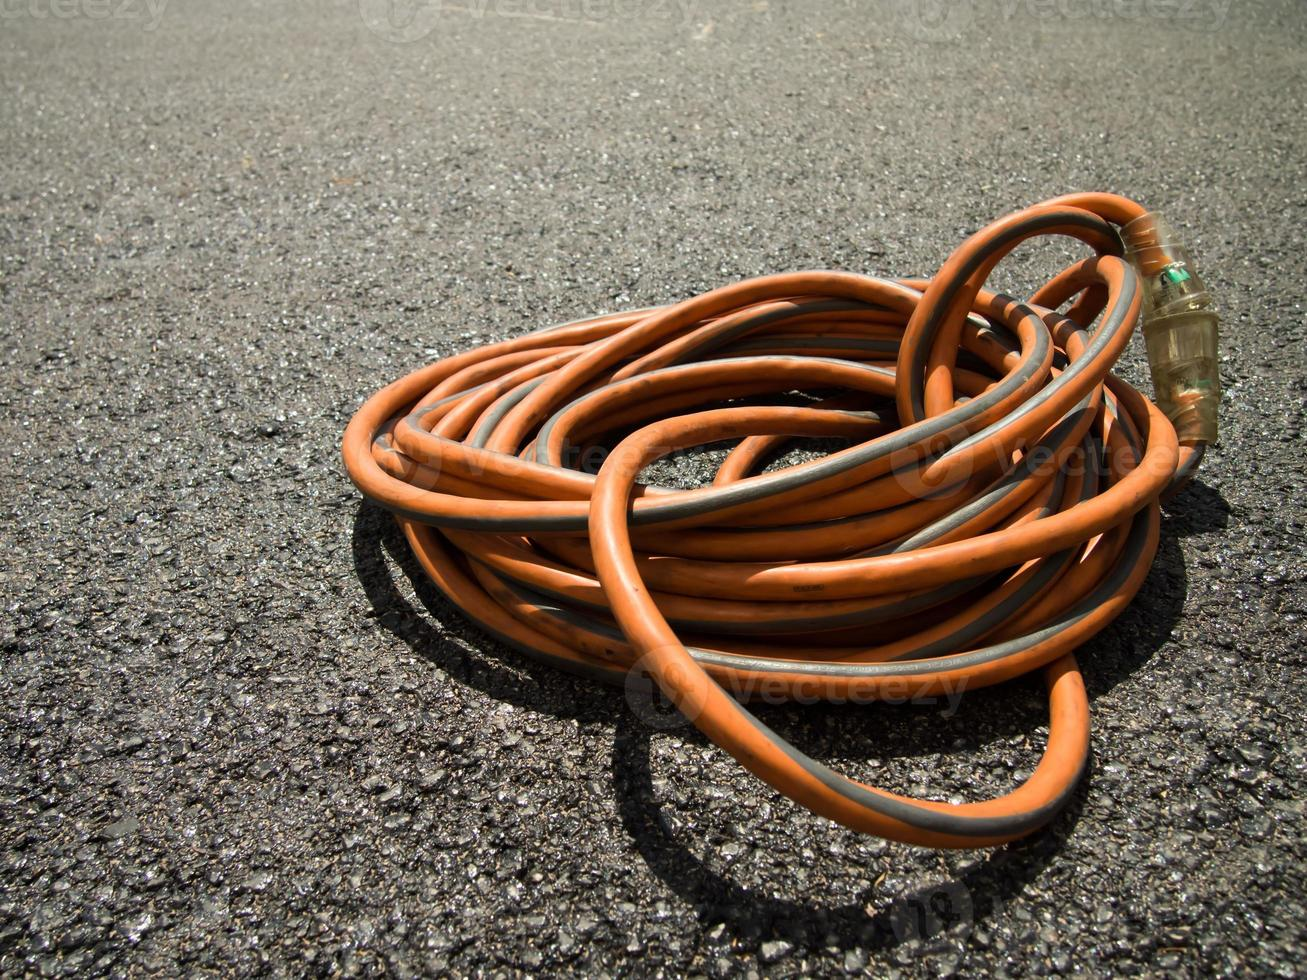 The Orange Extension Cord on the Ground at the Constructionsite photo